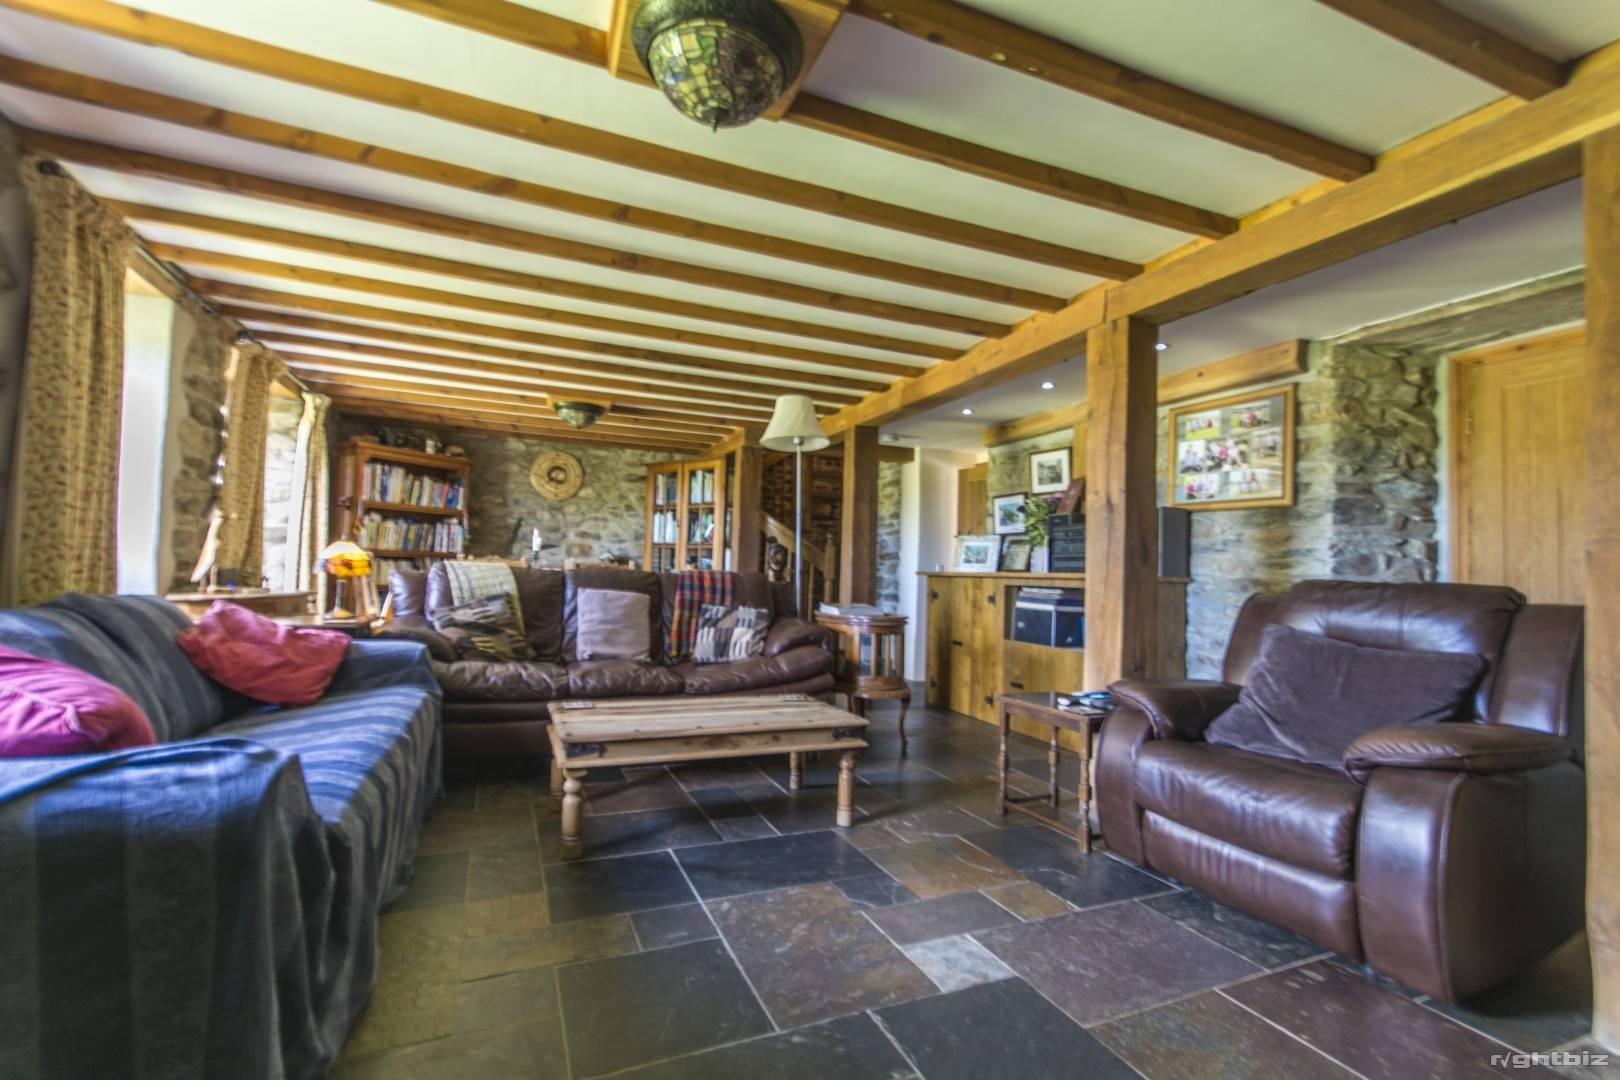 HOLIDAY LETTING BUSINESS/ LIVERY POTENTIAL + SMALLHOLDING + STABLES SET IN 10 ACRES - PEMBROKESHIRE - Image 4